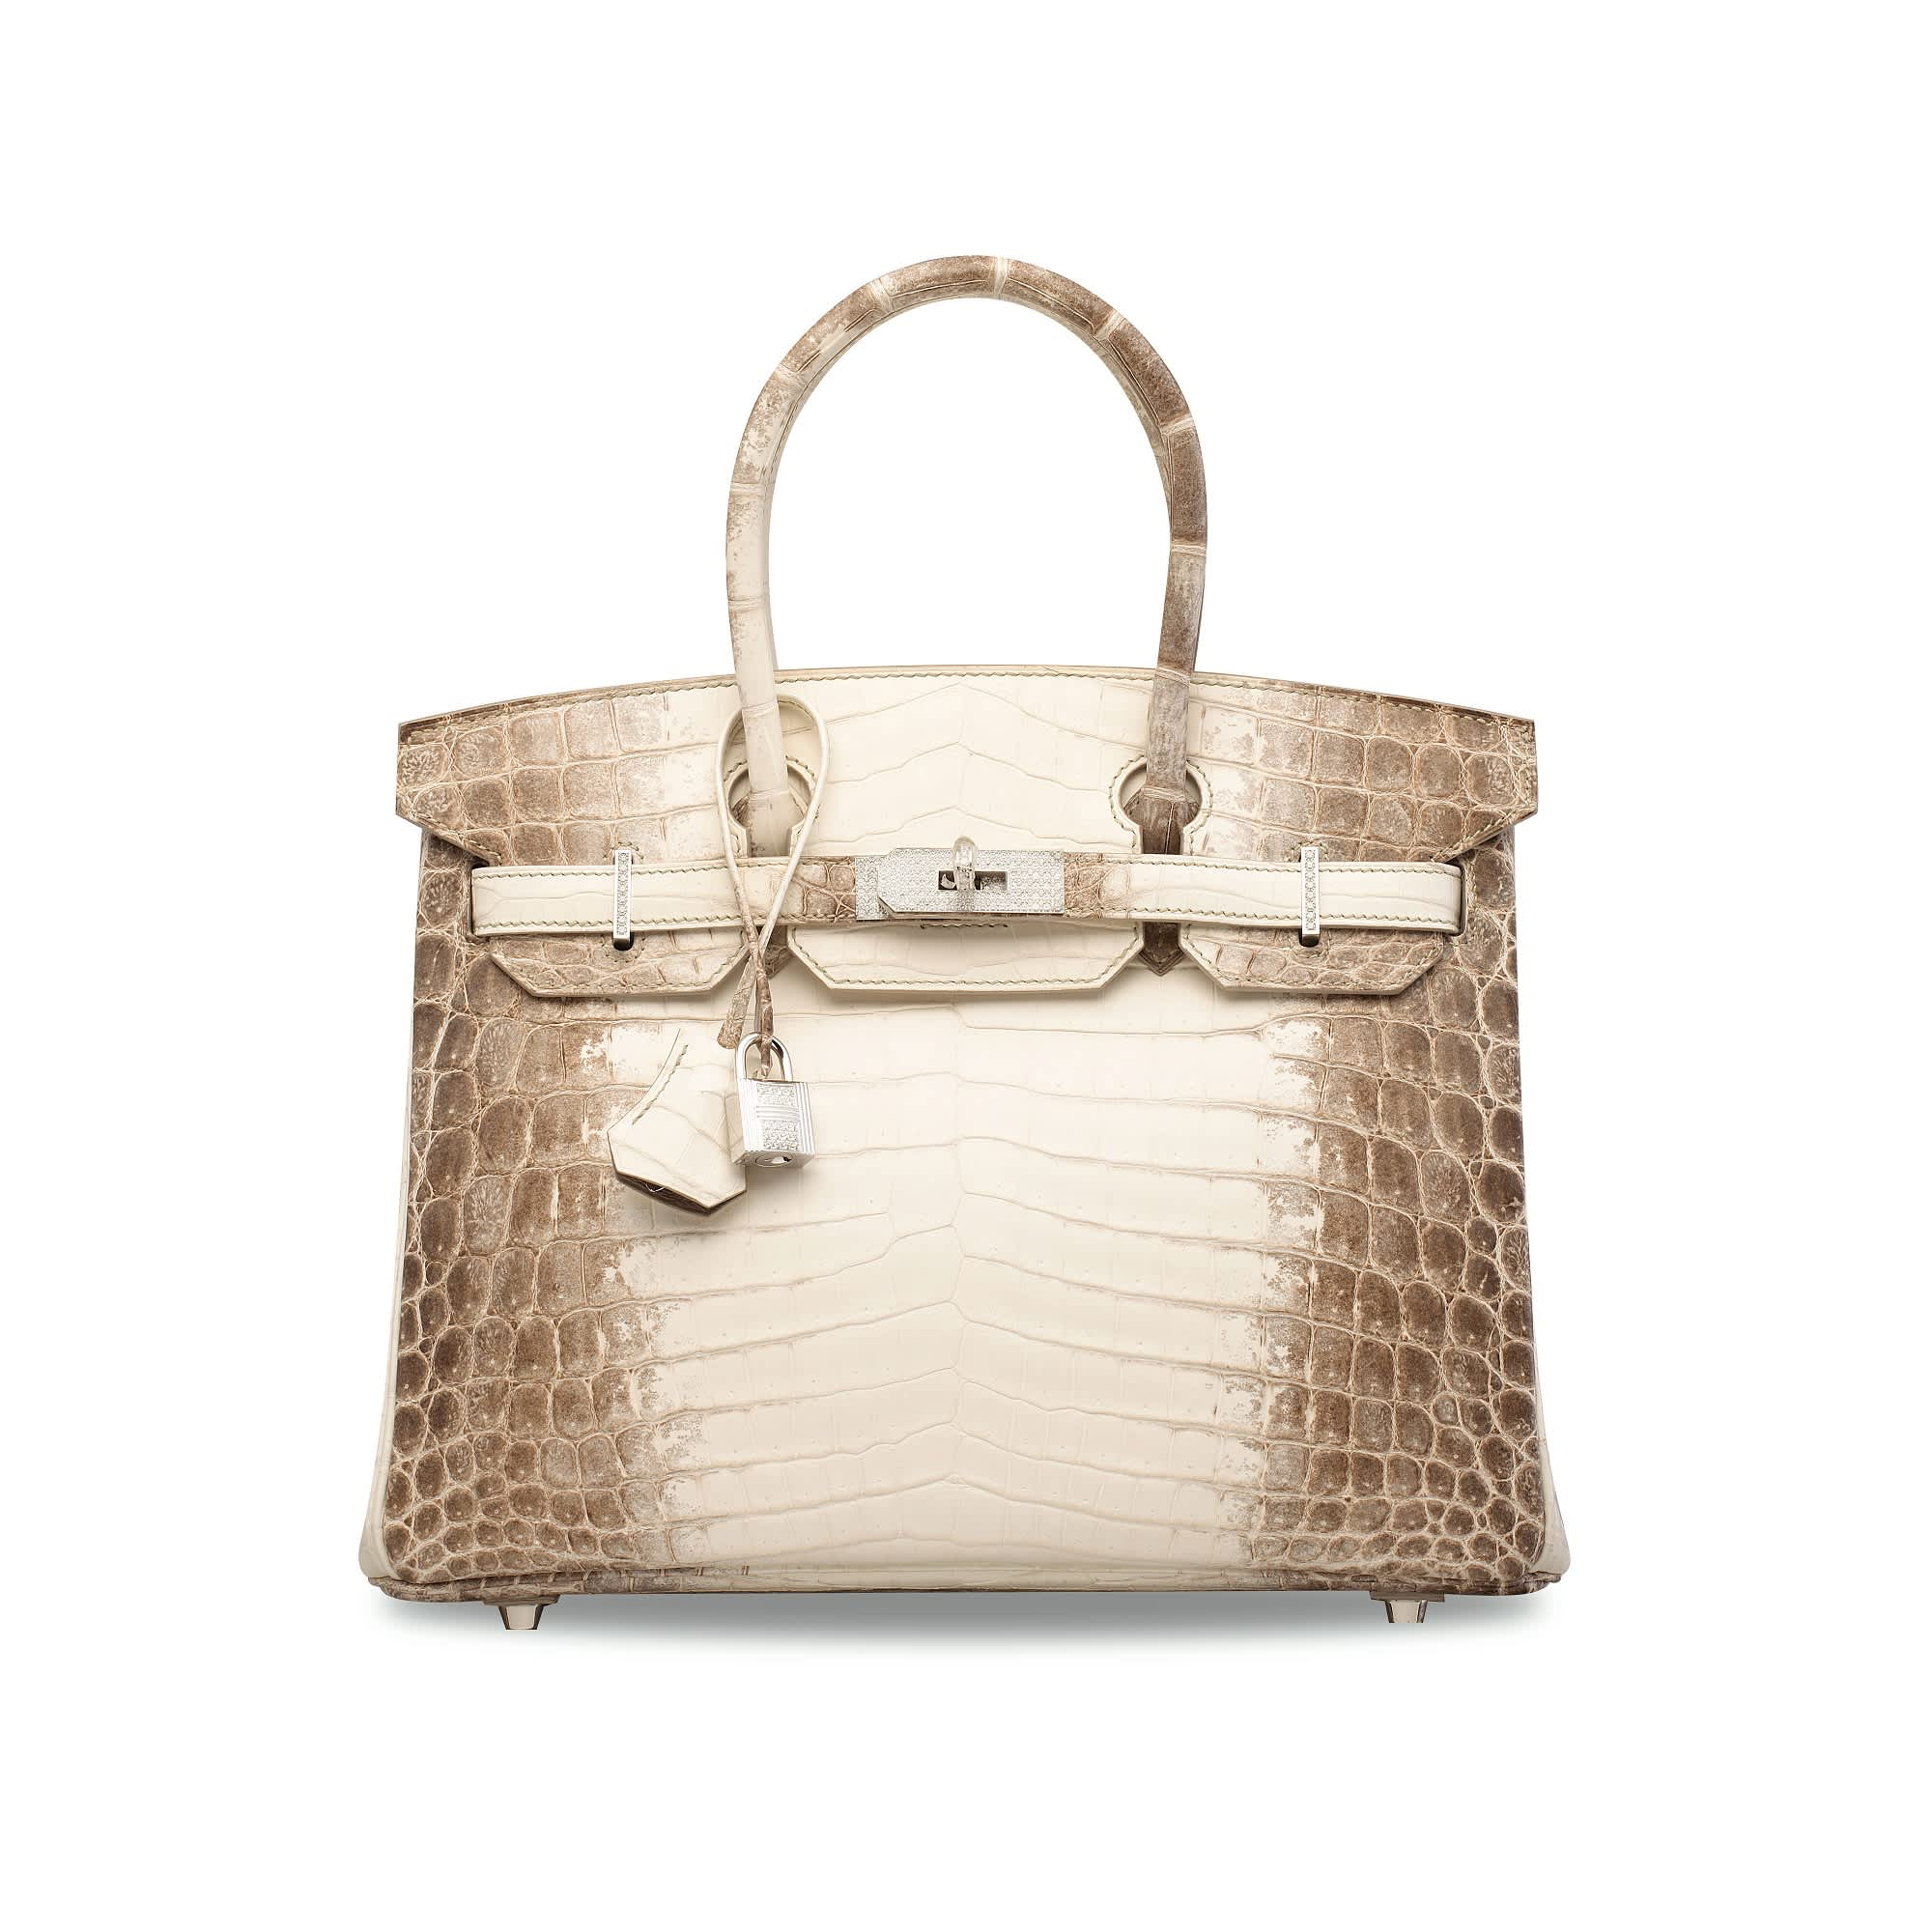 ac03602c01b8 This $379,261 Hermes Birkin handbag is the most expensive ever sold